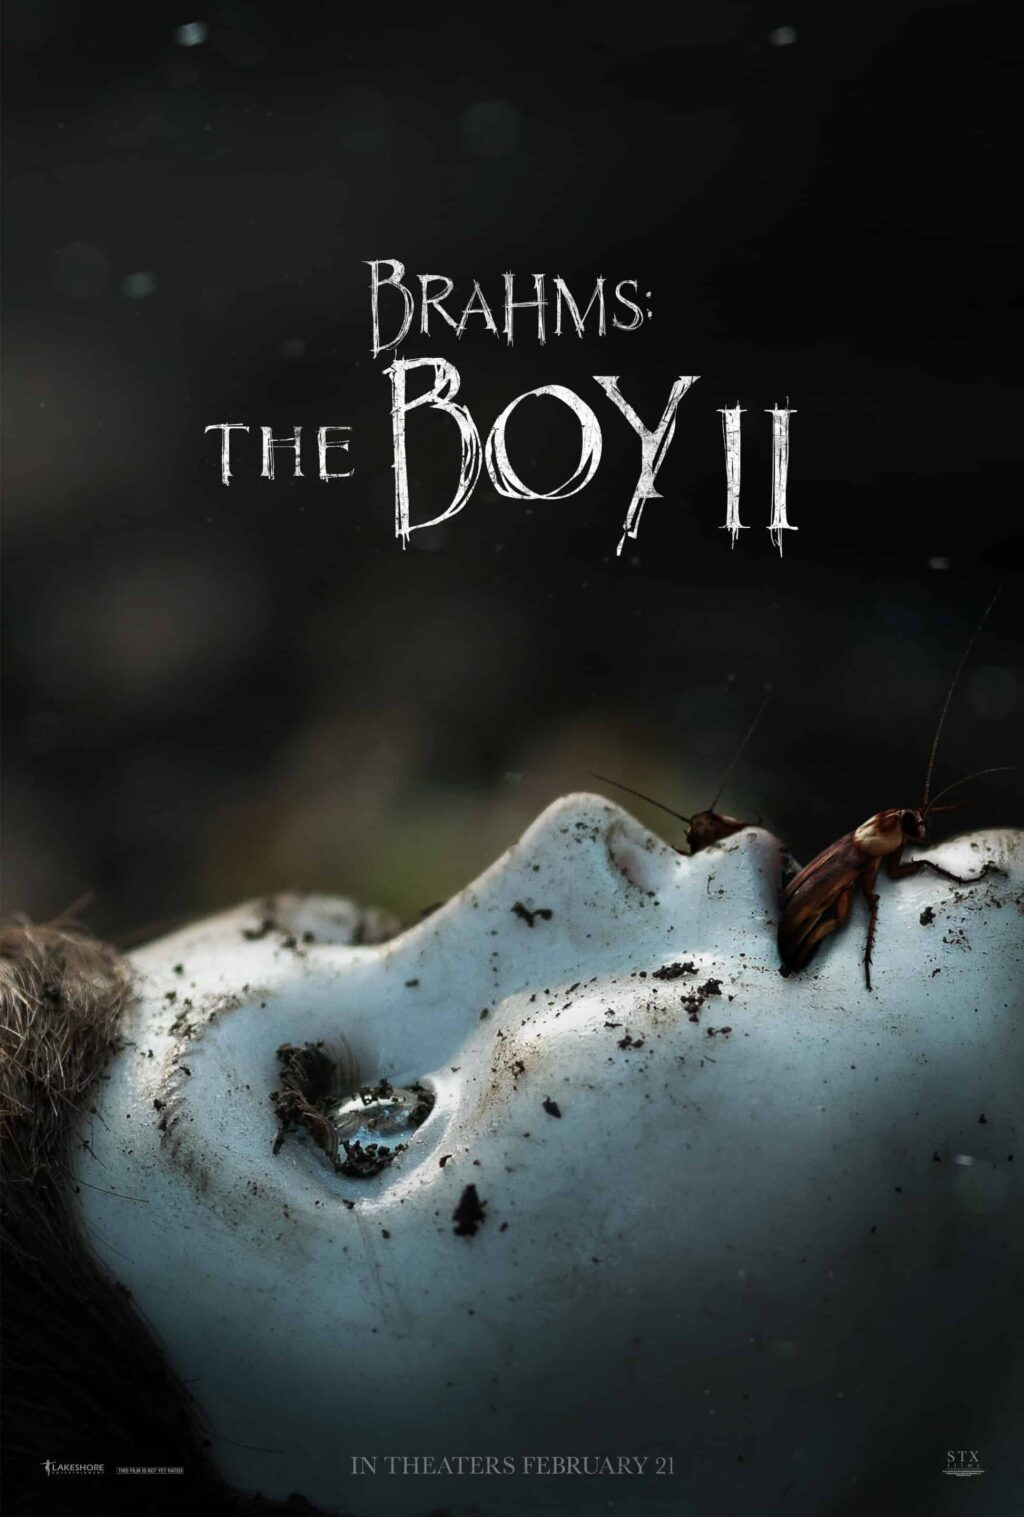 365913id1c STX The Boy2 Dom FNL 1sht 27x40 Digital sRGB2211 1024x1517 - Learn About the Mask in THE BOY and Check Out an Exclusive Photo From BRAHMS: THE BOY 2